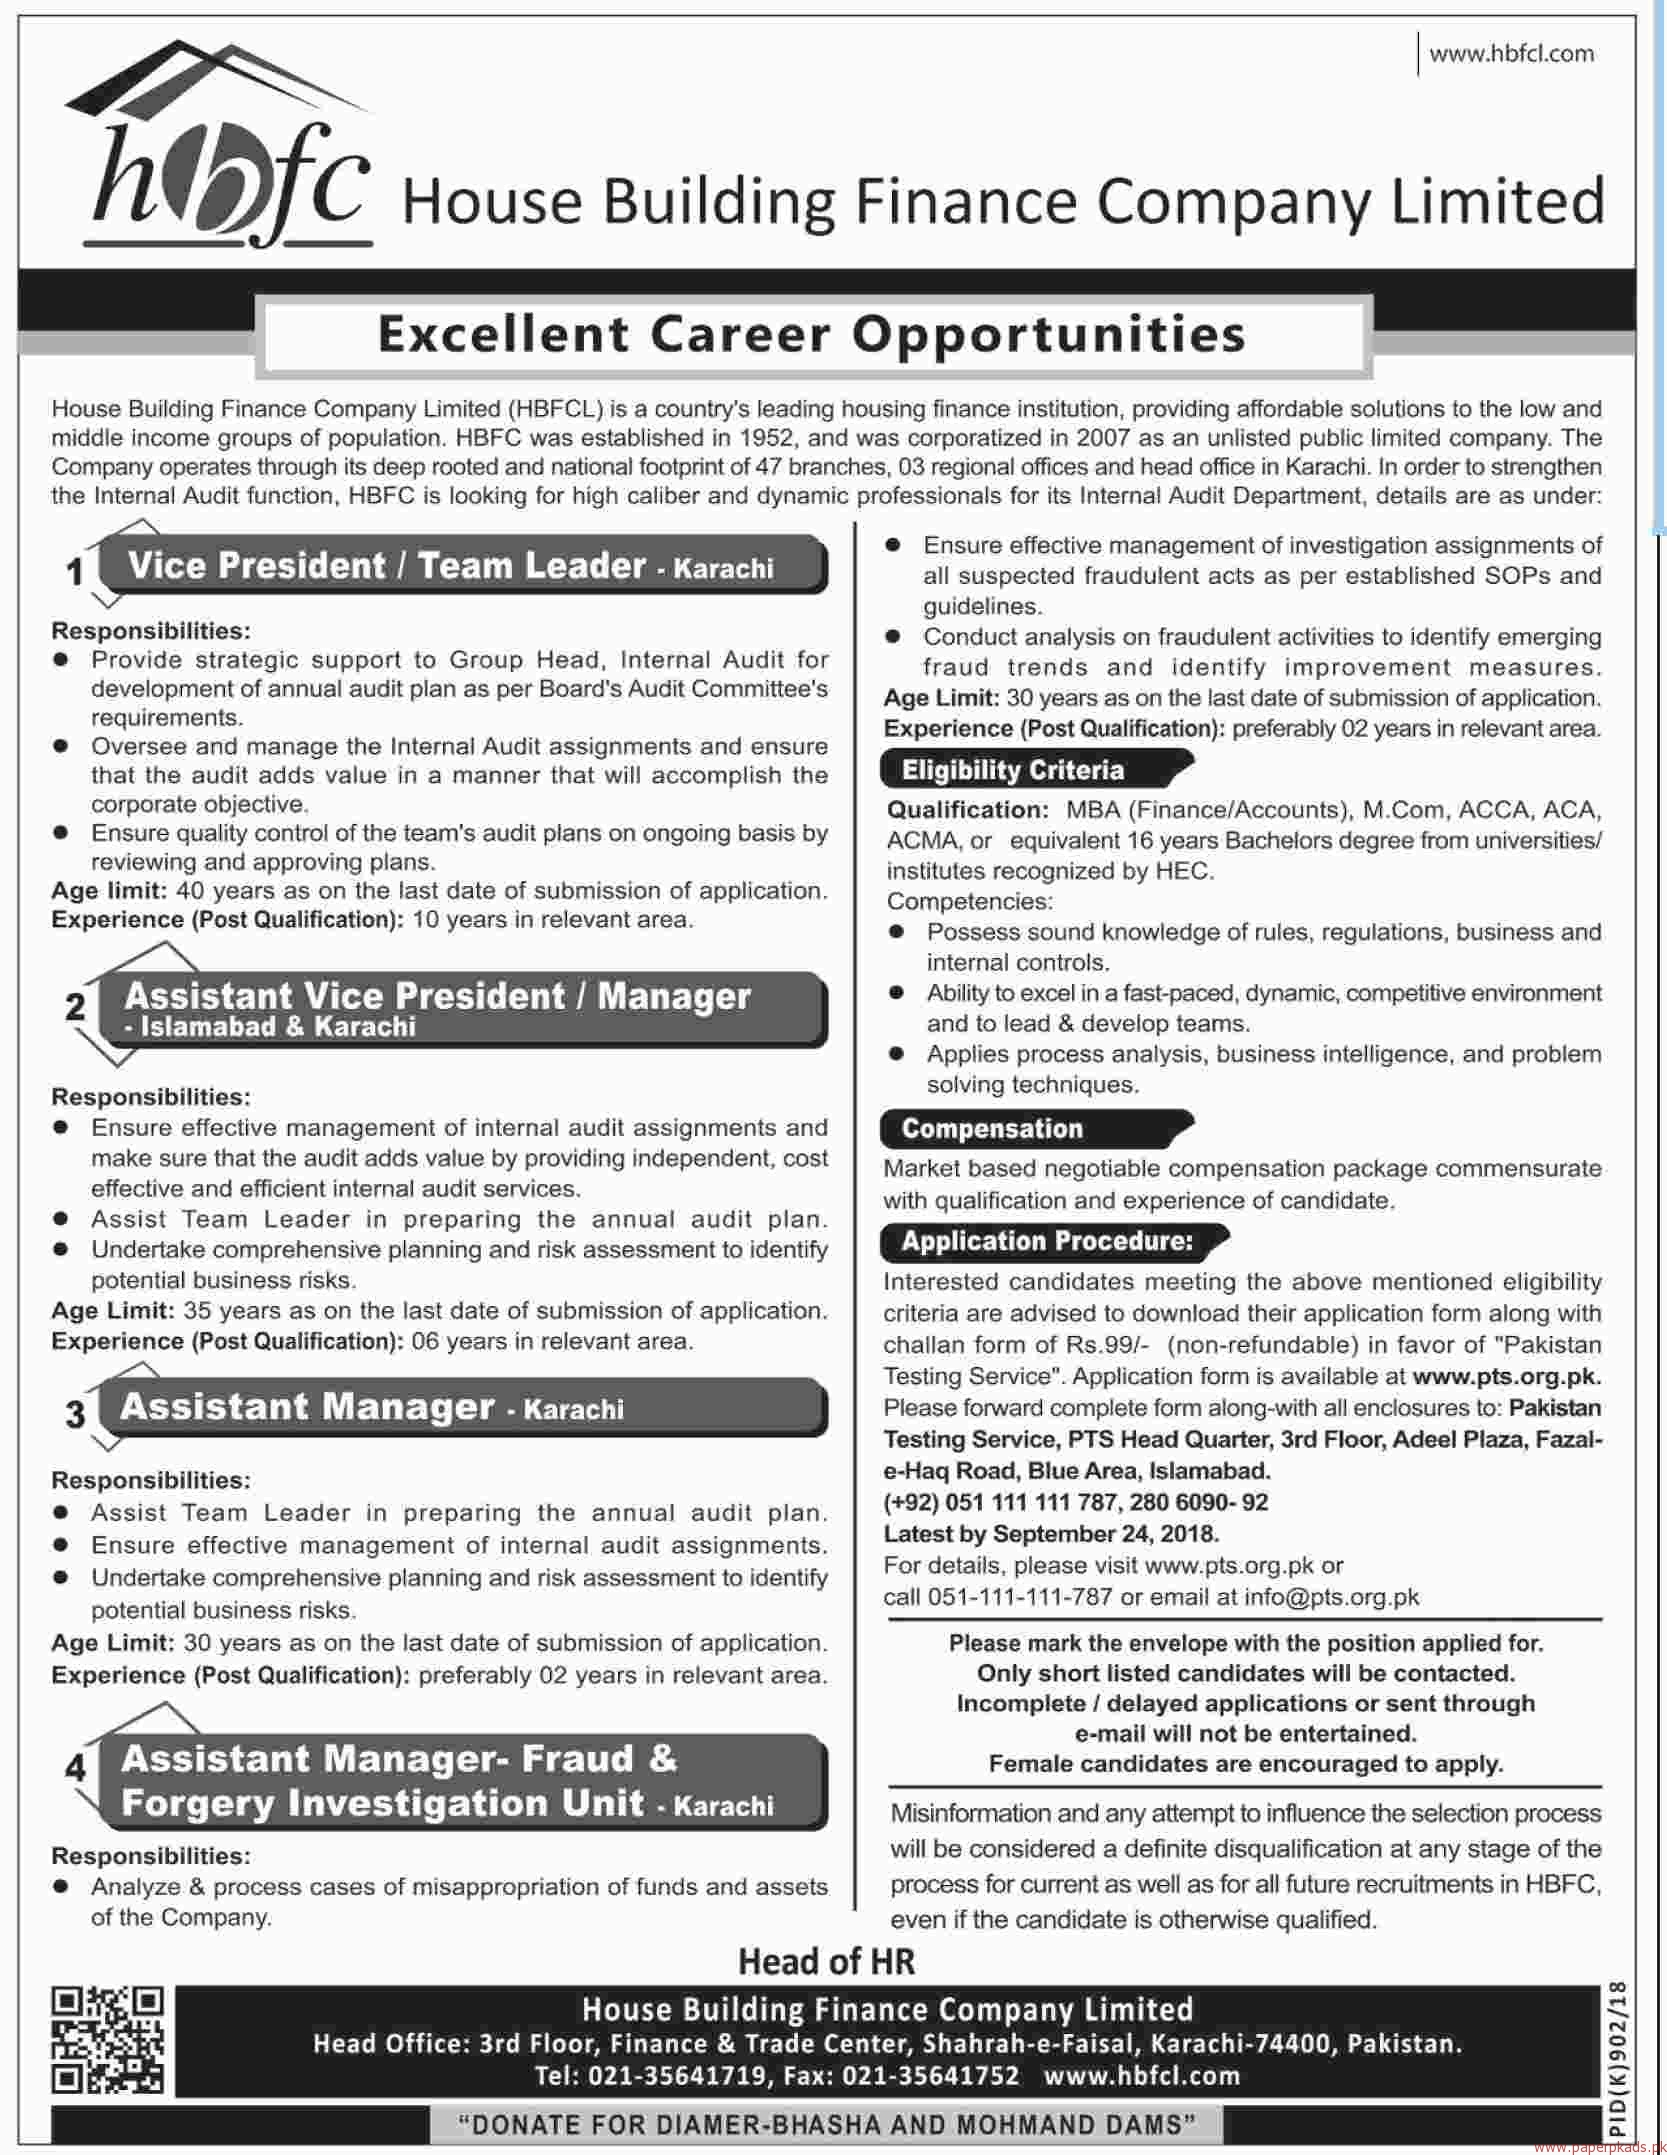 House Building Finance Company Limited Jobs 2018 latest